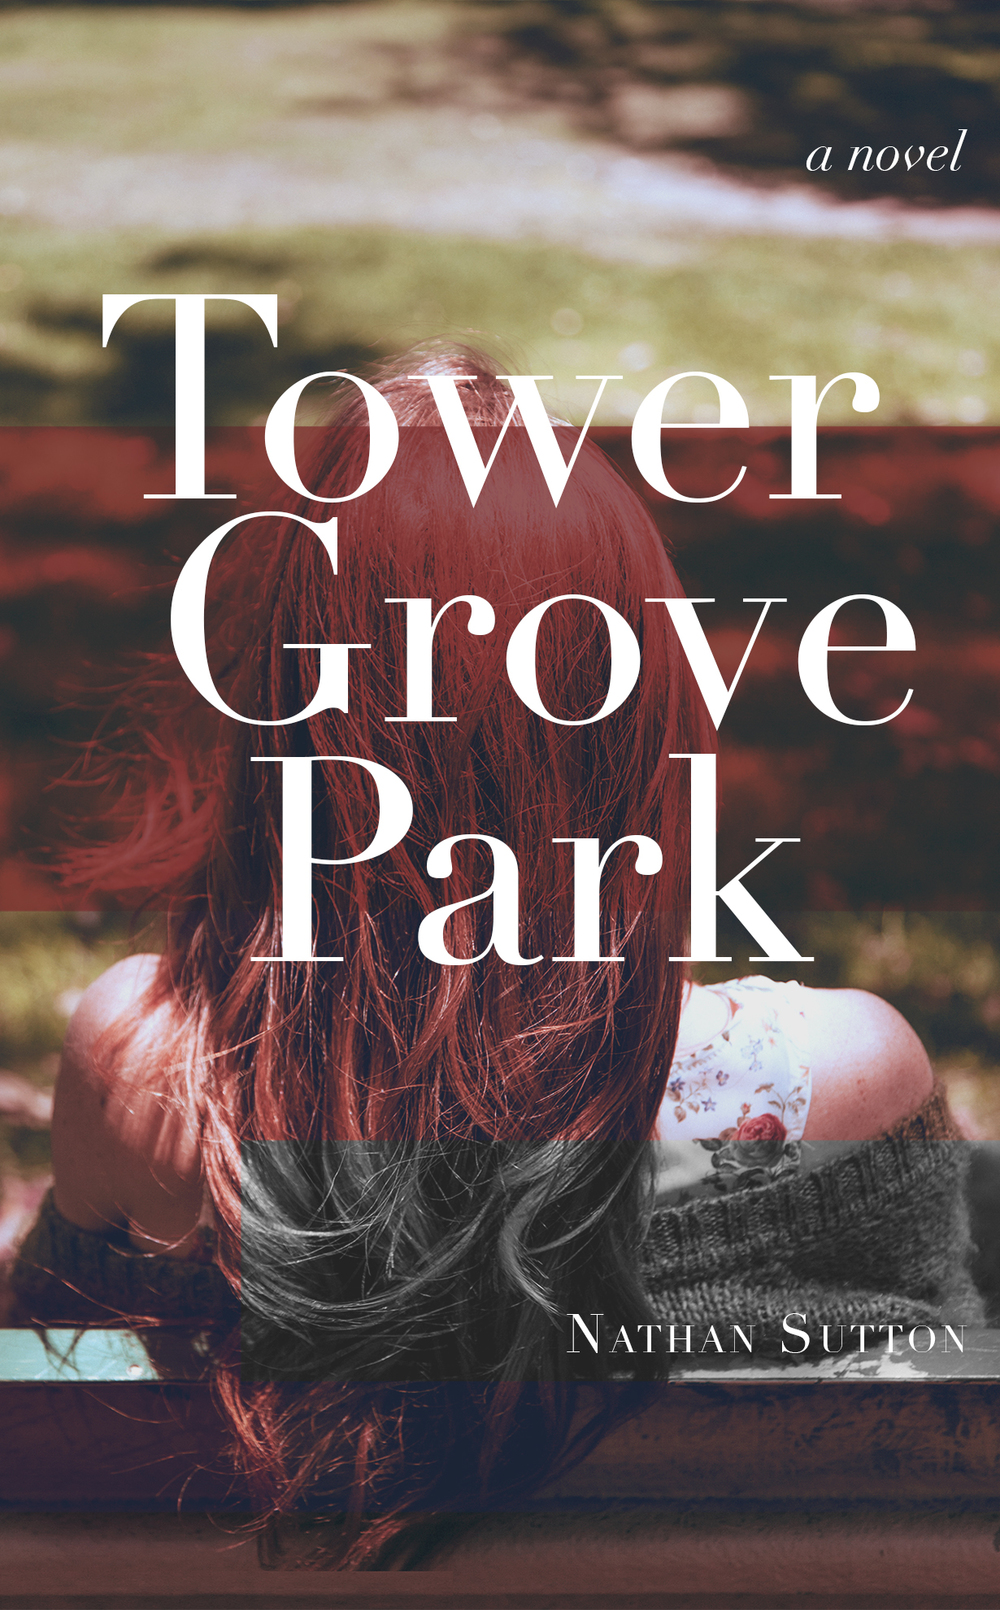 Tower Grove Park Book Cover